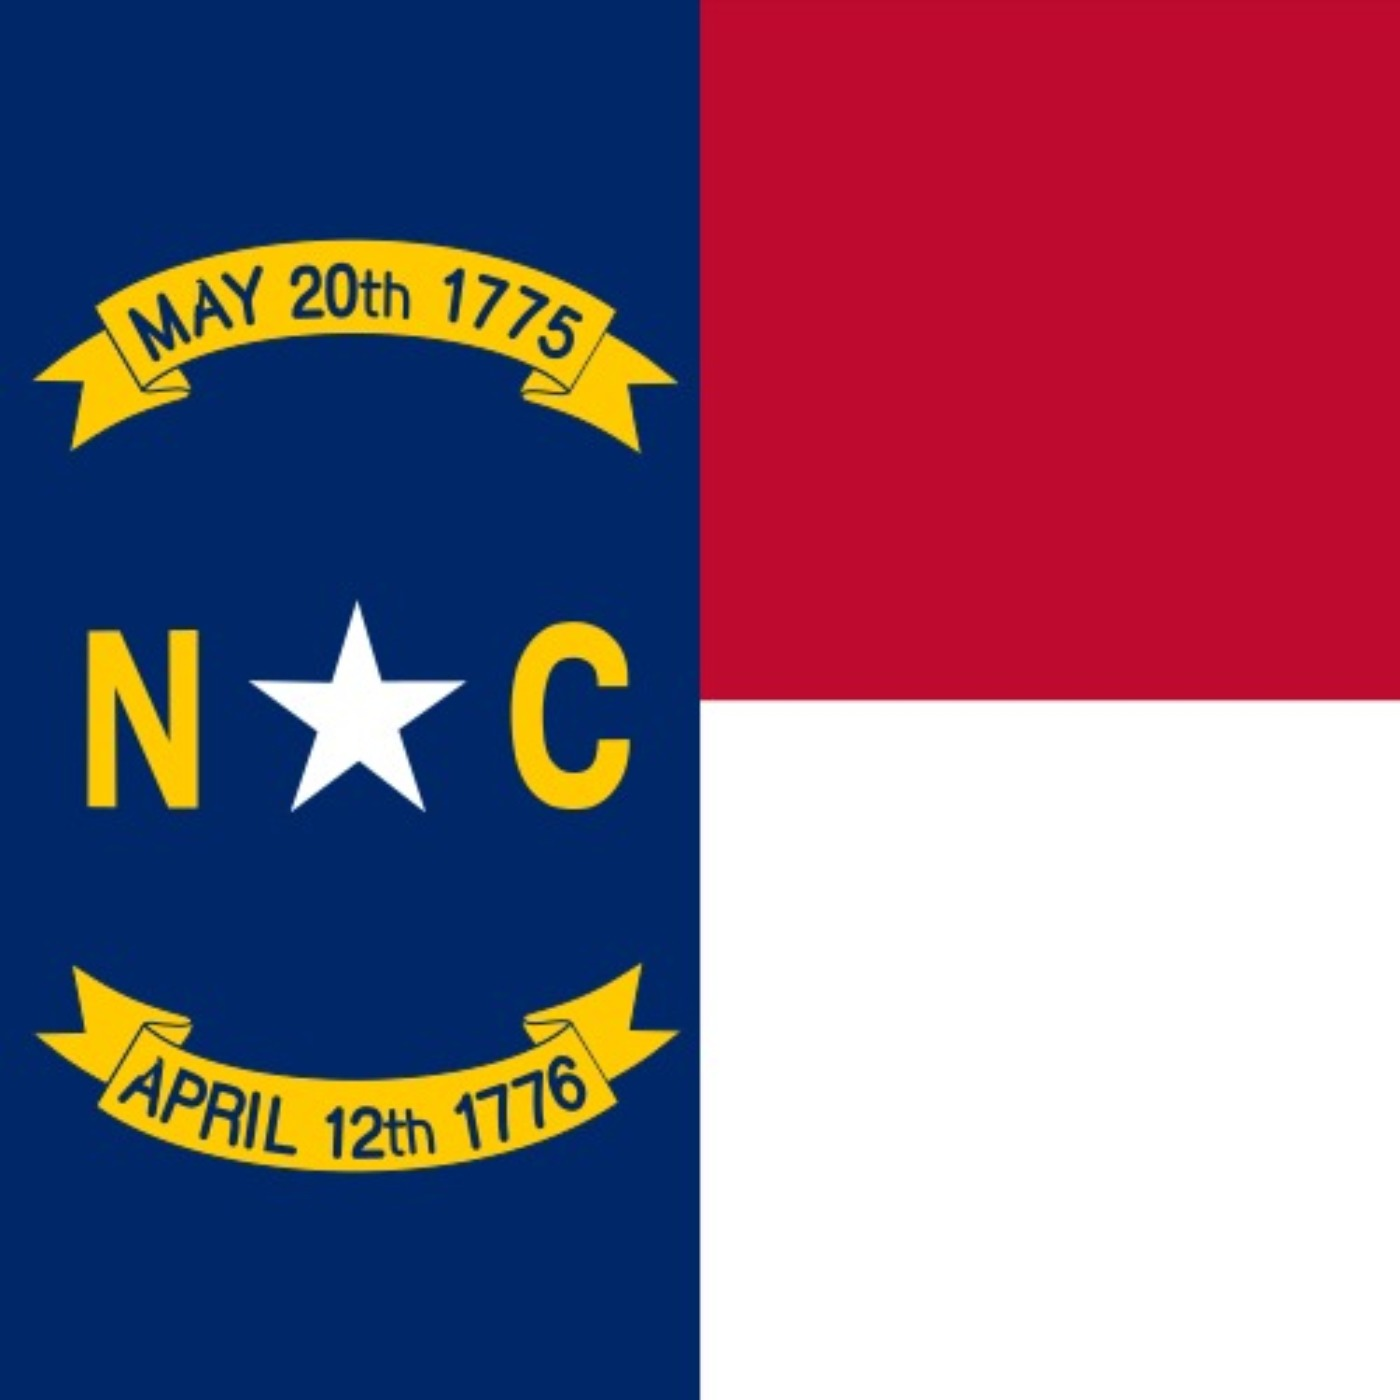 617 - Os Estados Unidos da América apresentam: Fun Facts of North Carolina!!